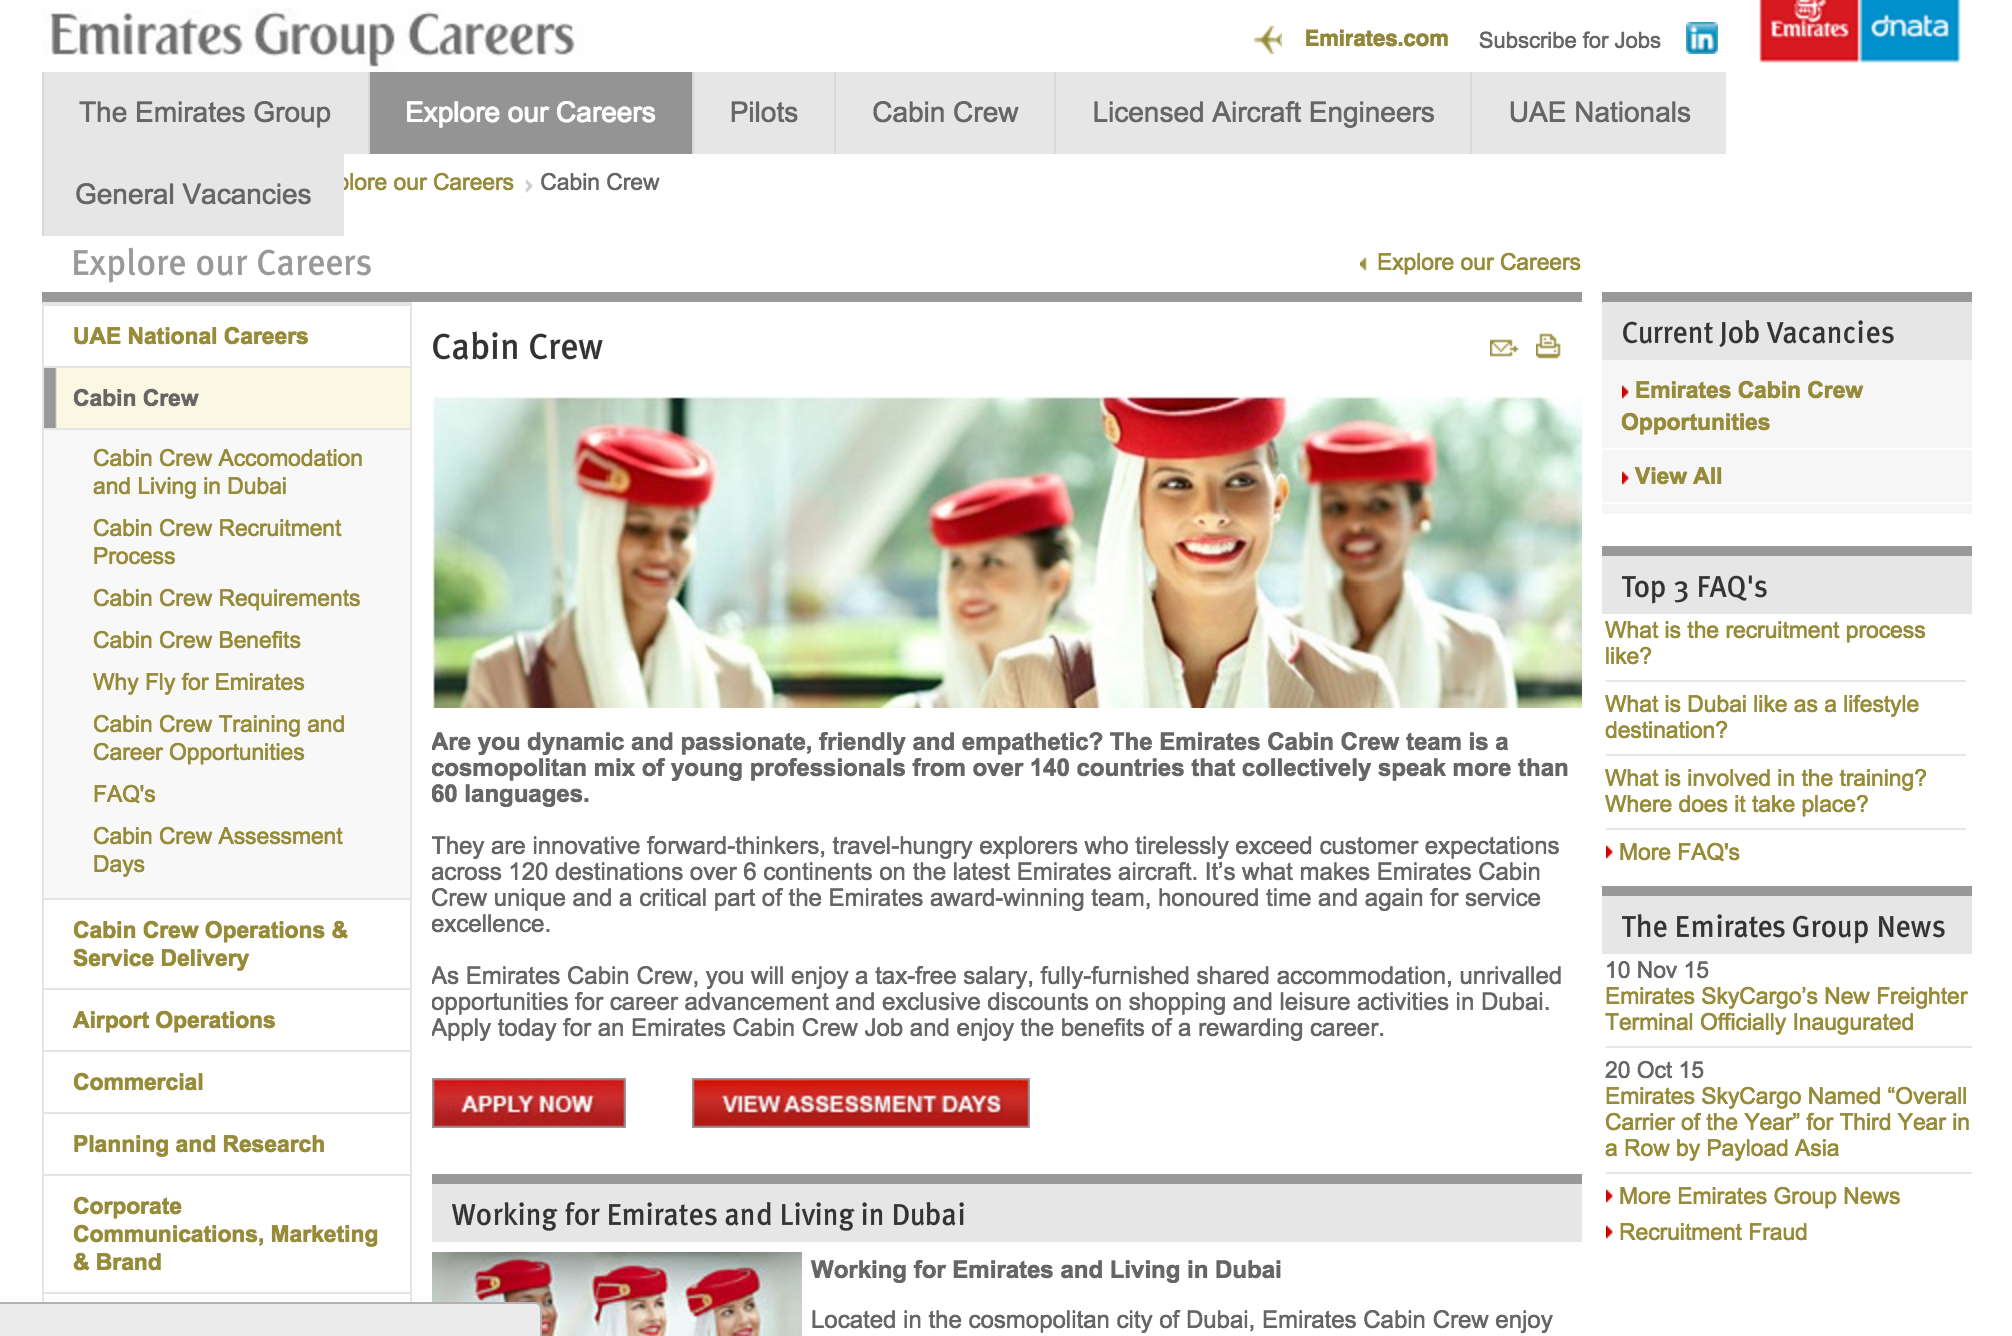 Would you like to LIVE ABROAD, TRAVEL often AND GET PAID for doing so? Emirates Airlines is always looking for dynamic and passionate, friendly and empathetic flight crew members! The EMIRATES CABIN CREW team is a cosmopolitan mix of young PROFESSIONALS FROM over 140 COUNTRIES that collectively speak more than 60 languages. If this seems a good fit, find out when next they're in your city and APPLY! HAPPY FLYING! :)